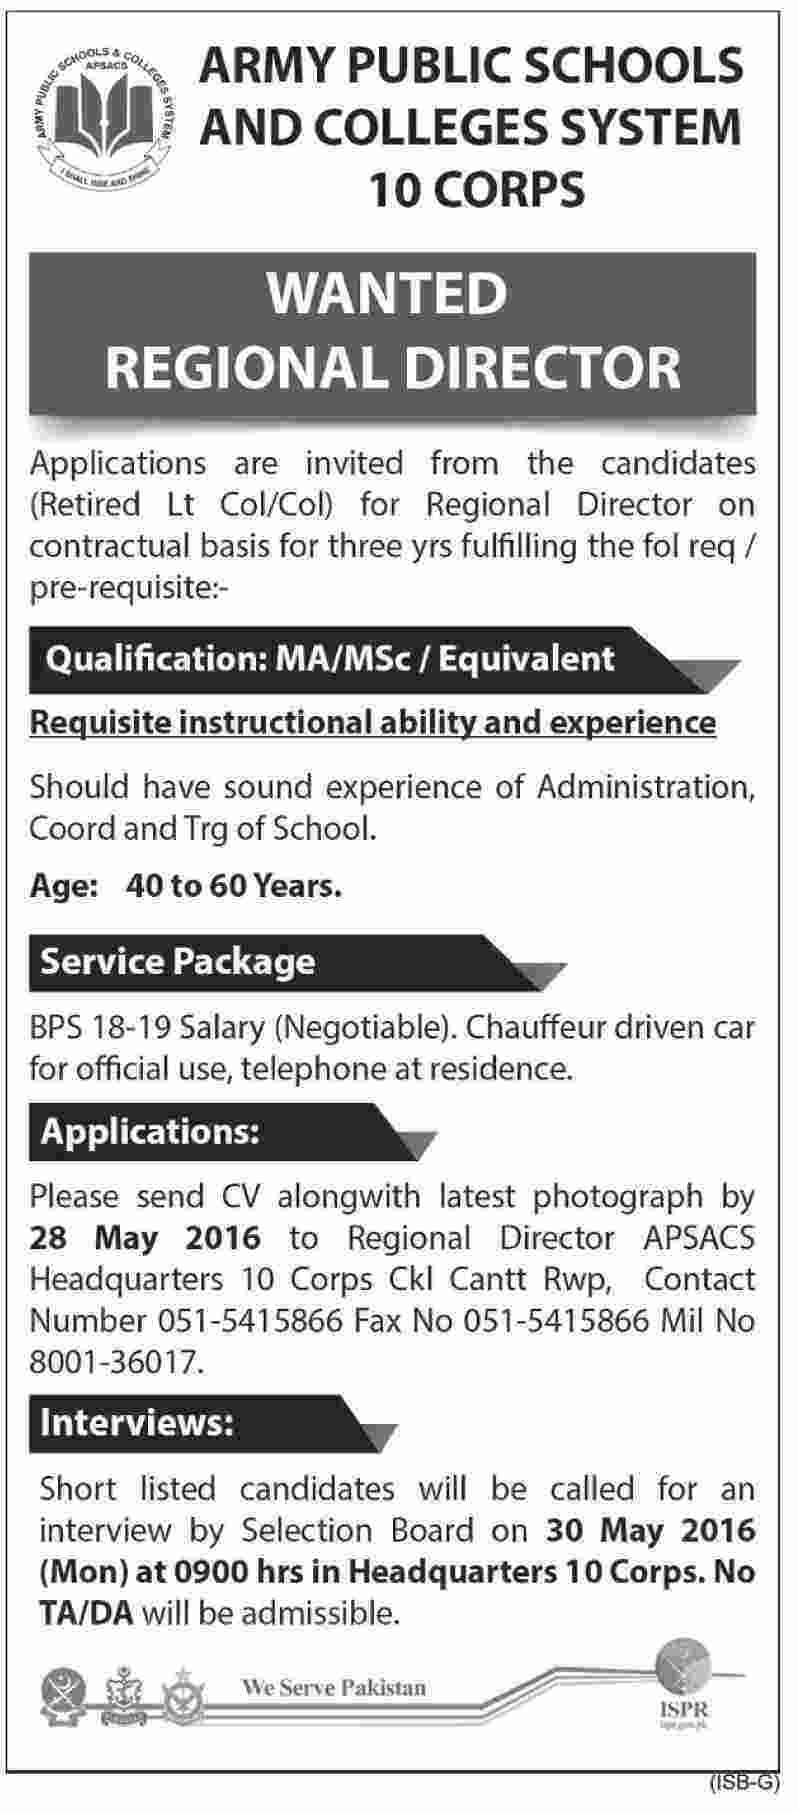 Army Public School and Colleges System Regional Director Required